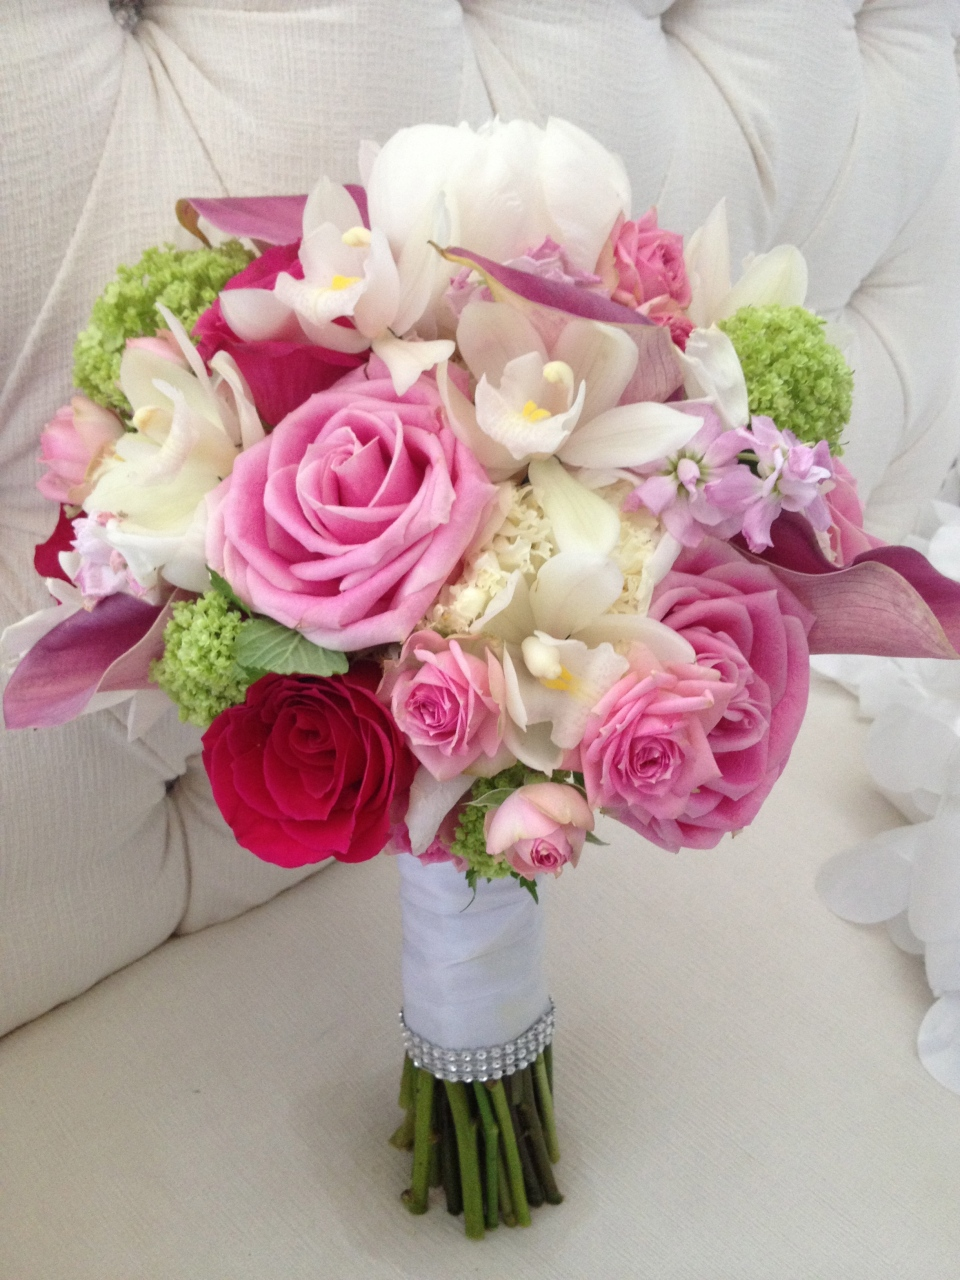 Bridal bouquet of roses, peonies, spray roses, calla lilies, vibernum, stock & mini cymbidium orchids